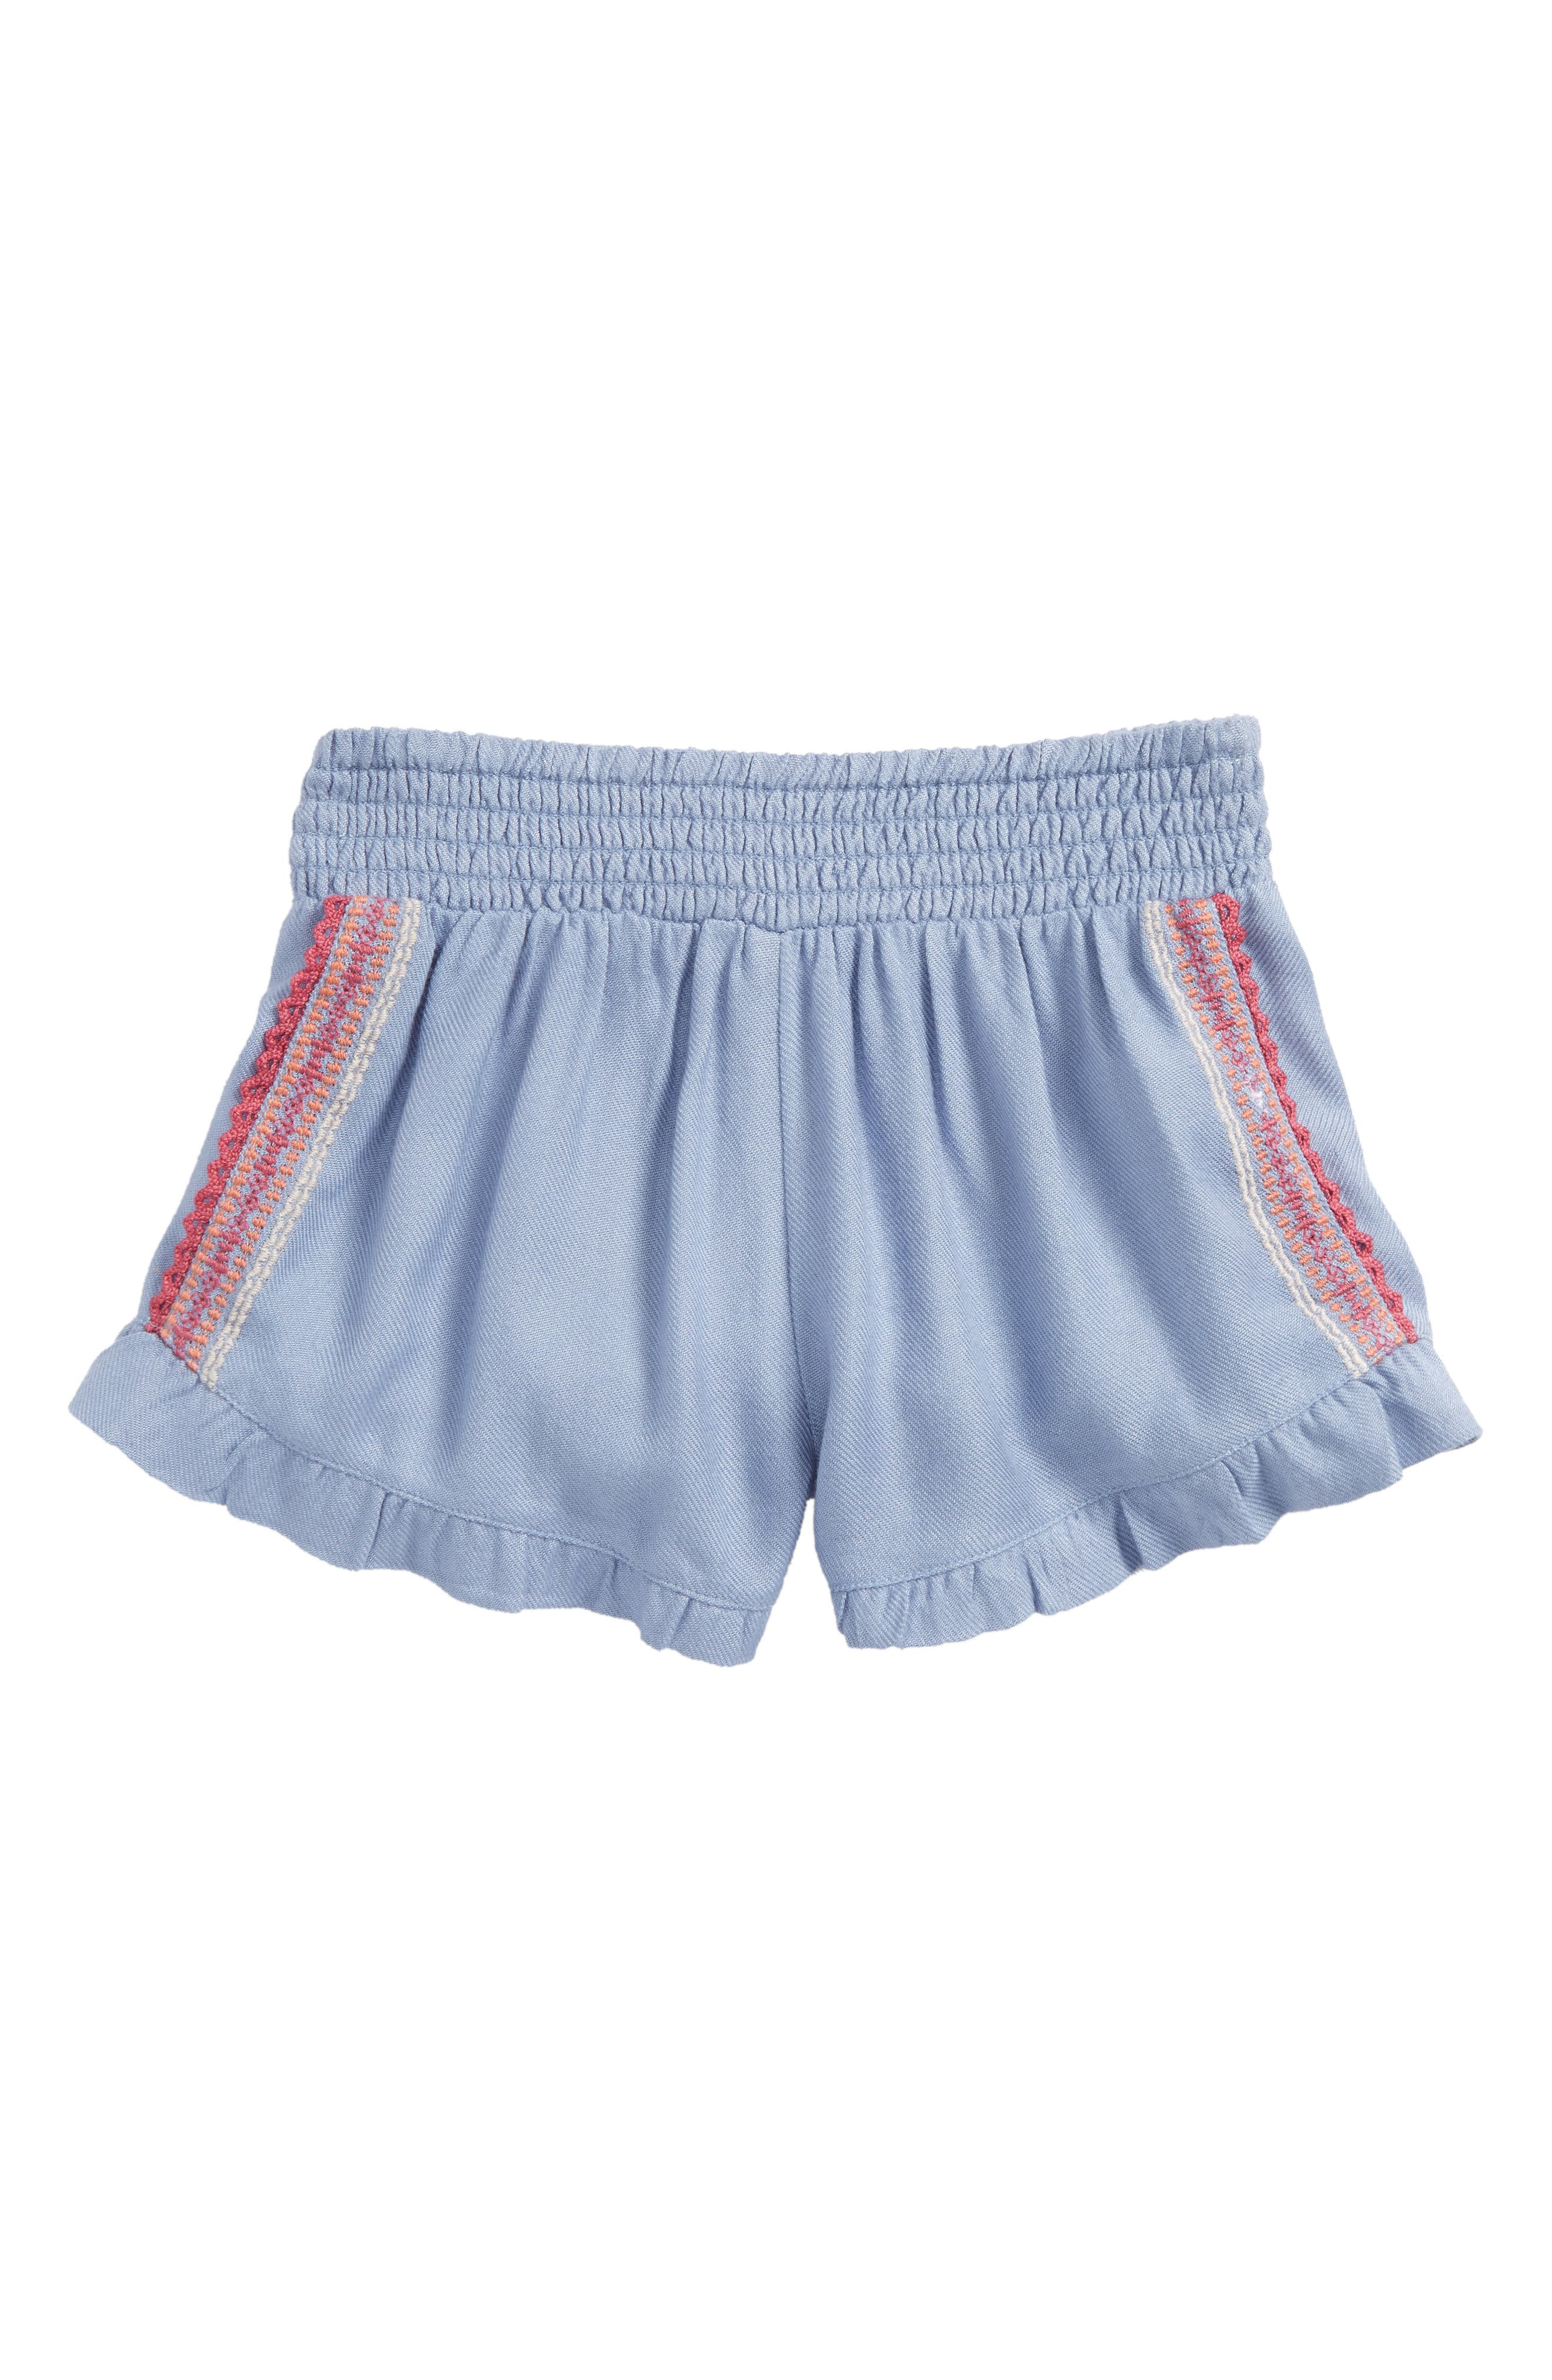 O'NEILL Bay Ruffle Shorts, Main, color, 400